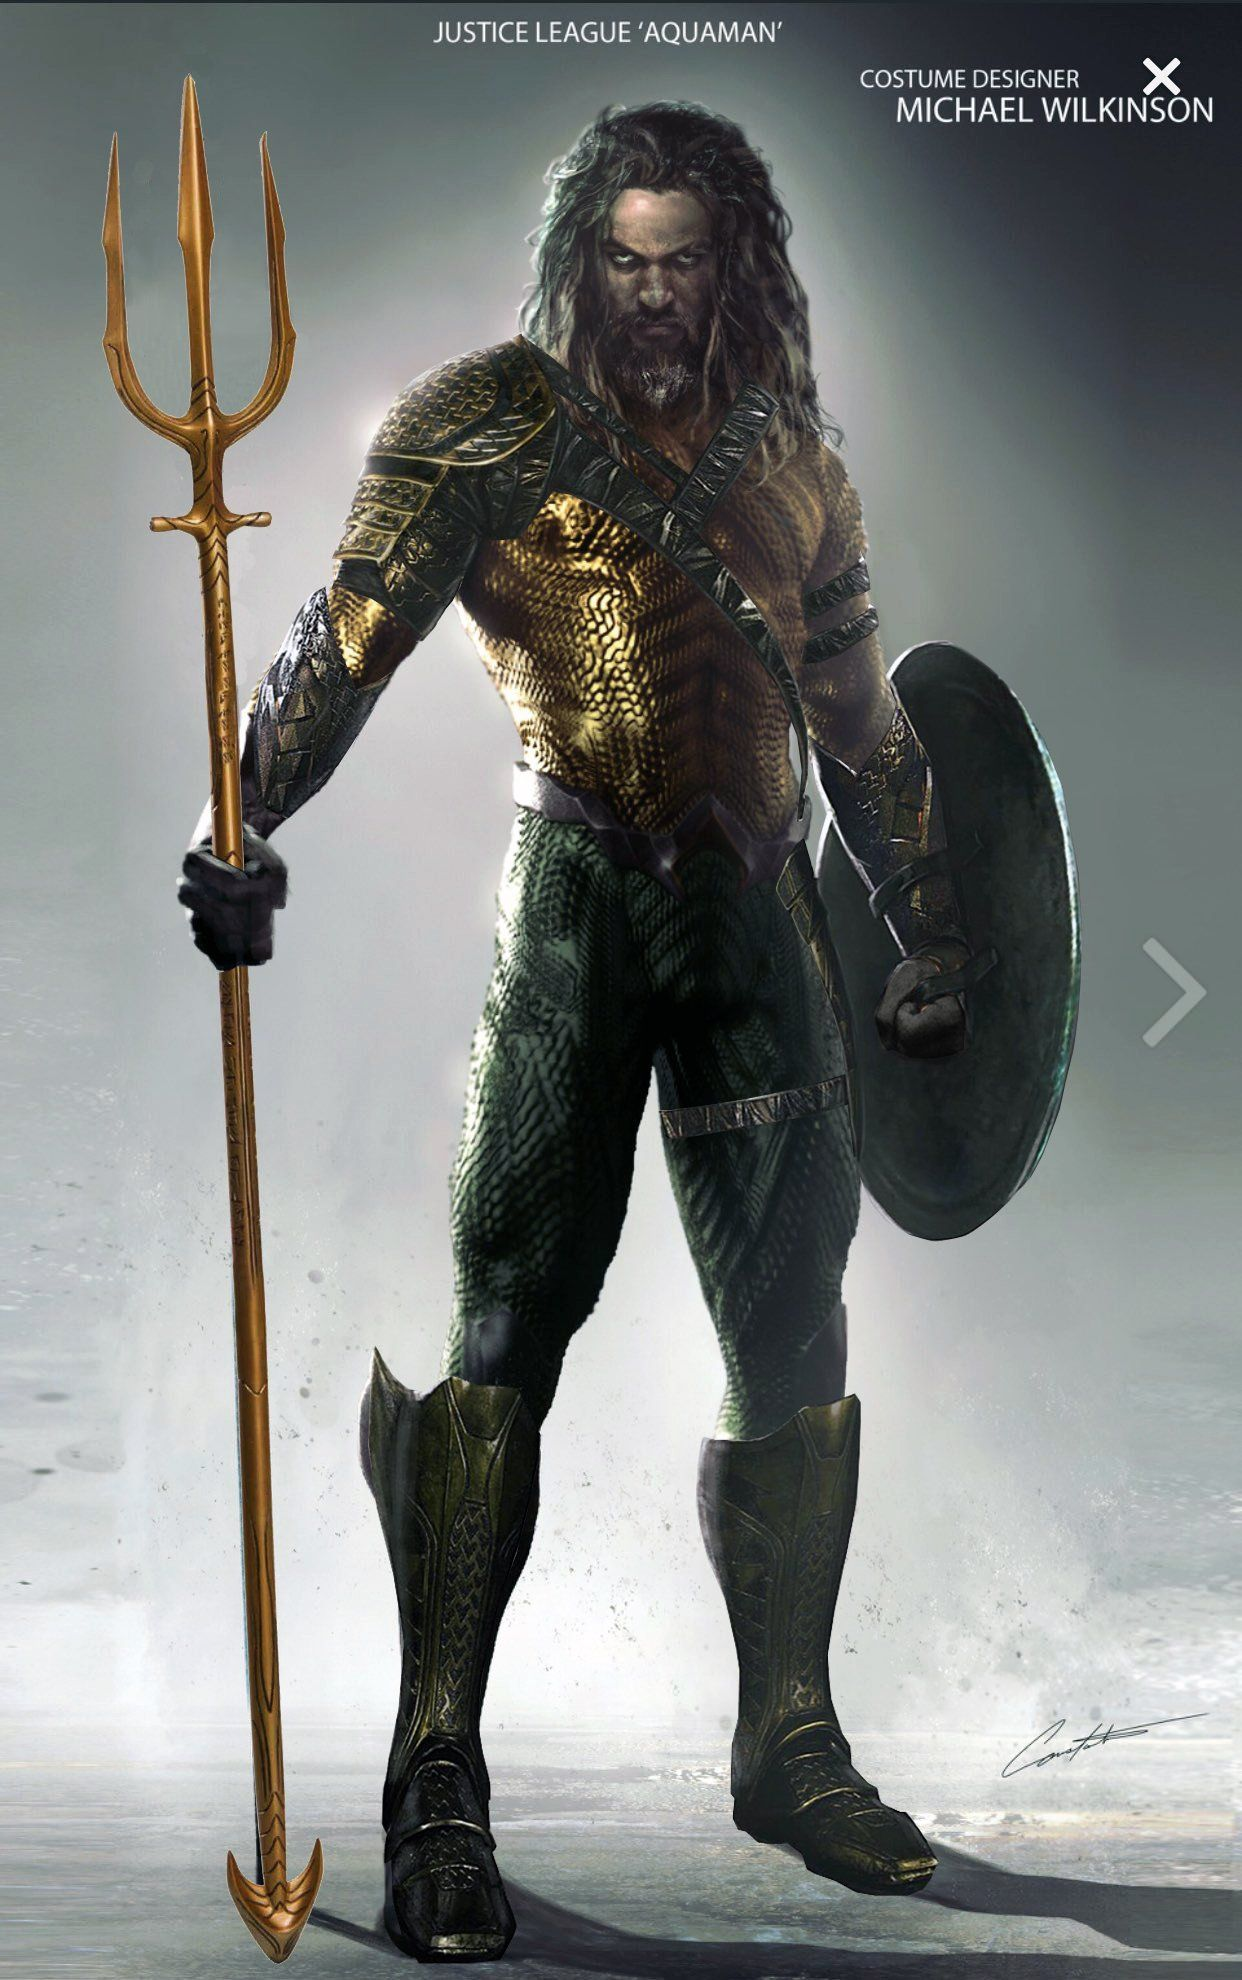 Fan Art This Is A Mix Of All 3 Of Aquaman S Appearances In The Dceu From Bvs Justice League And The Aq Dc Comics Superheroes Marvel Dc Movies Dc Comics Art